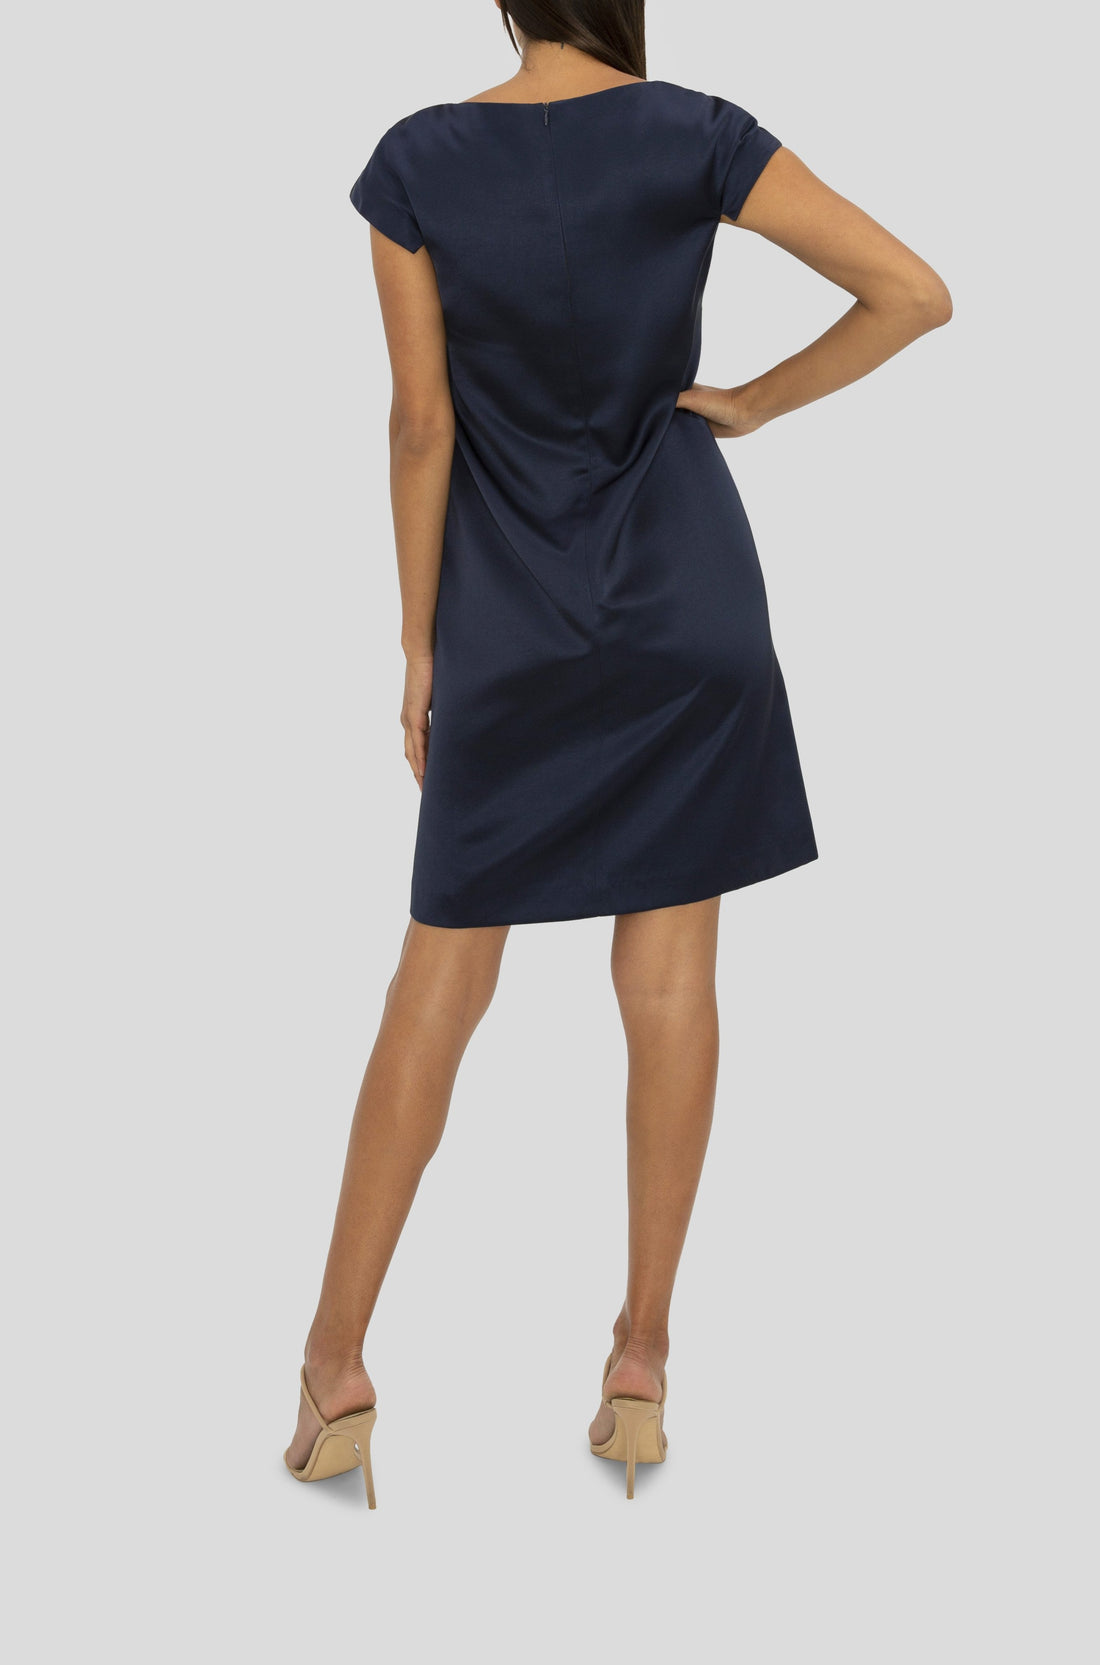 NAVY SATIN SABRINA DRESS